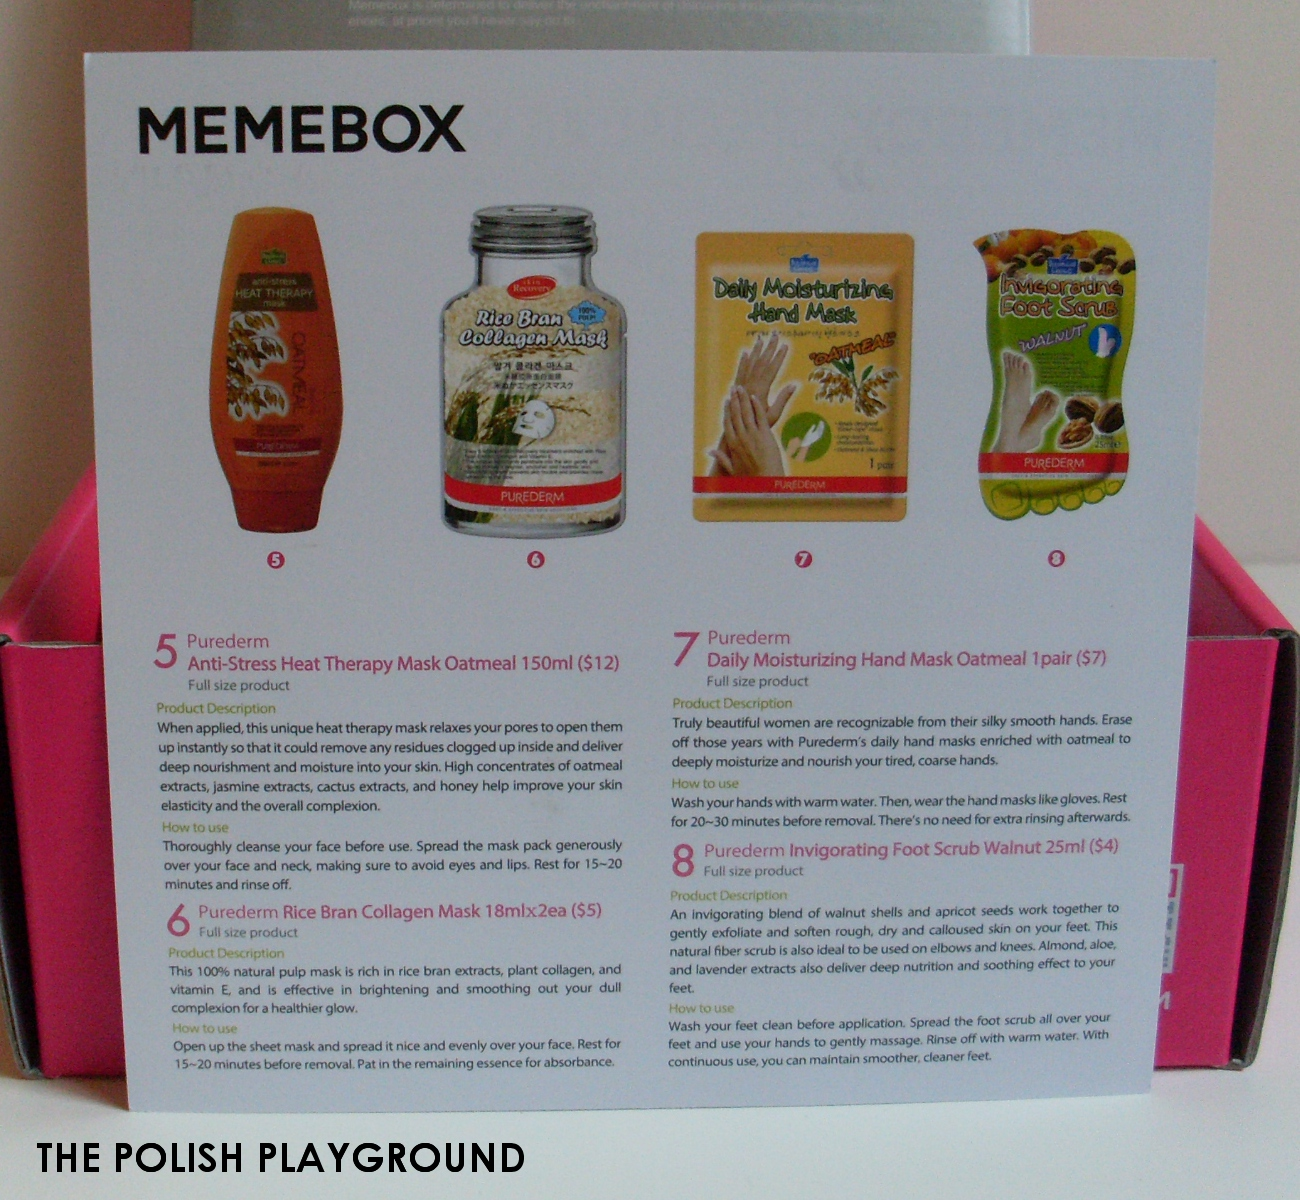 Memebox Special #6 Whole Grain Unboxing